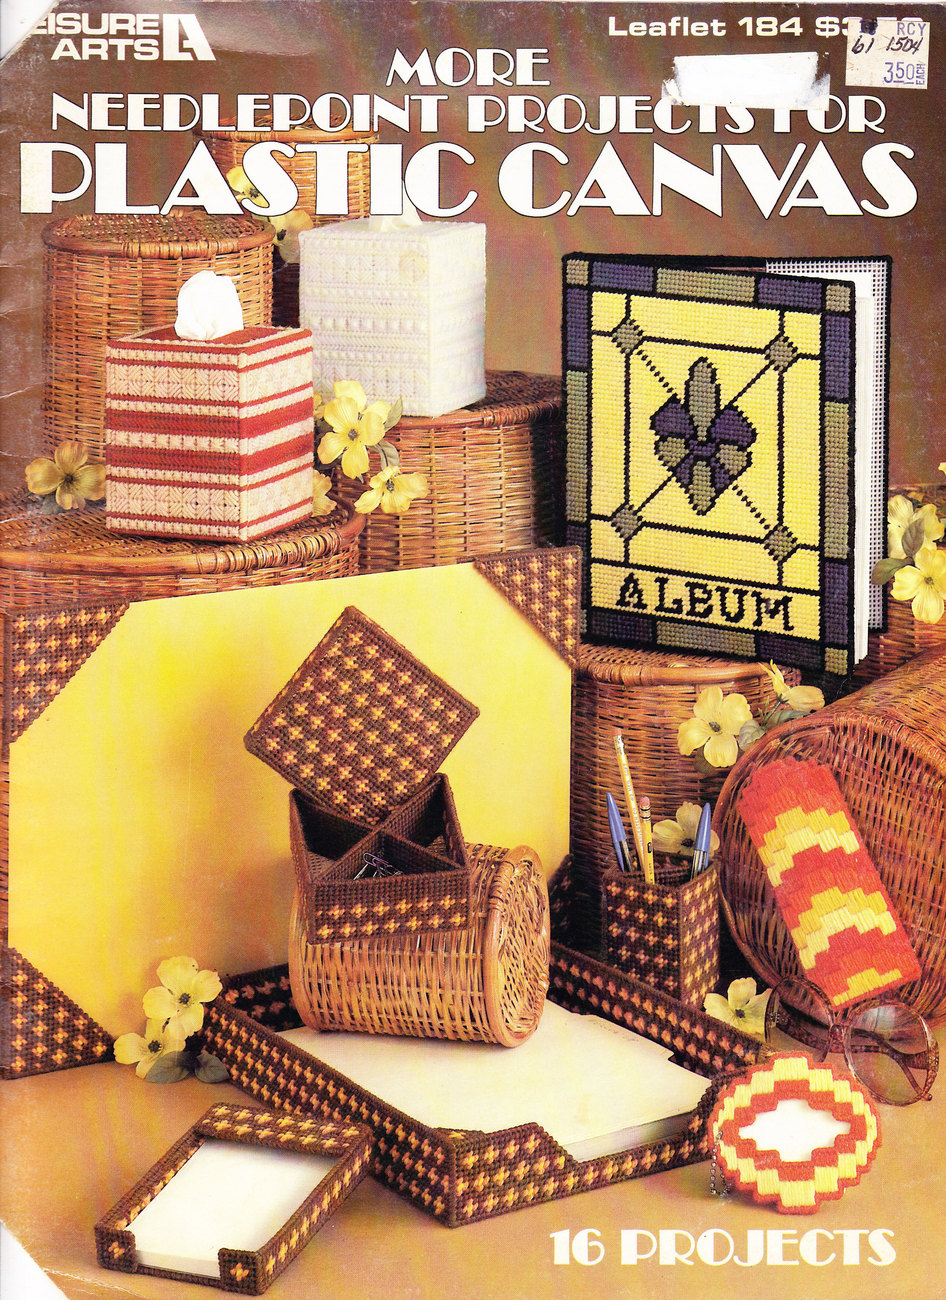 MORE NEEDLEPOINT PROJECTS FOR PLASTIC CANVAS LEISURE ART 184 FREEBIE SEE DETAILS - Freebie